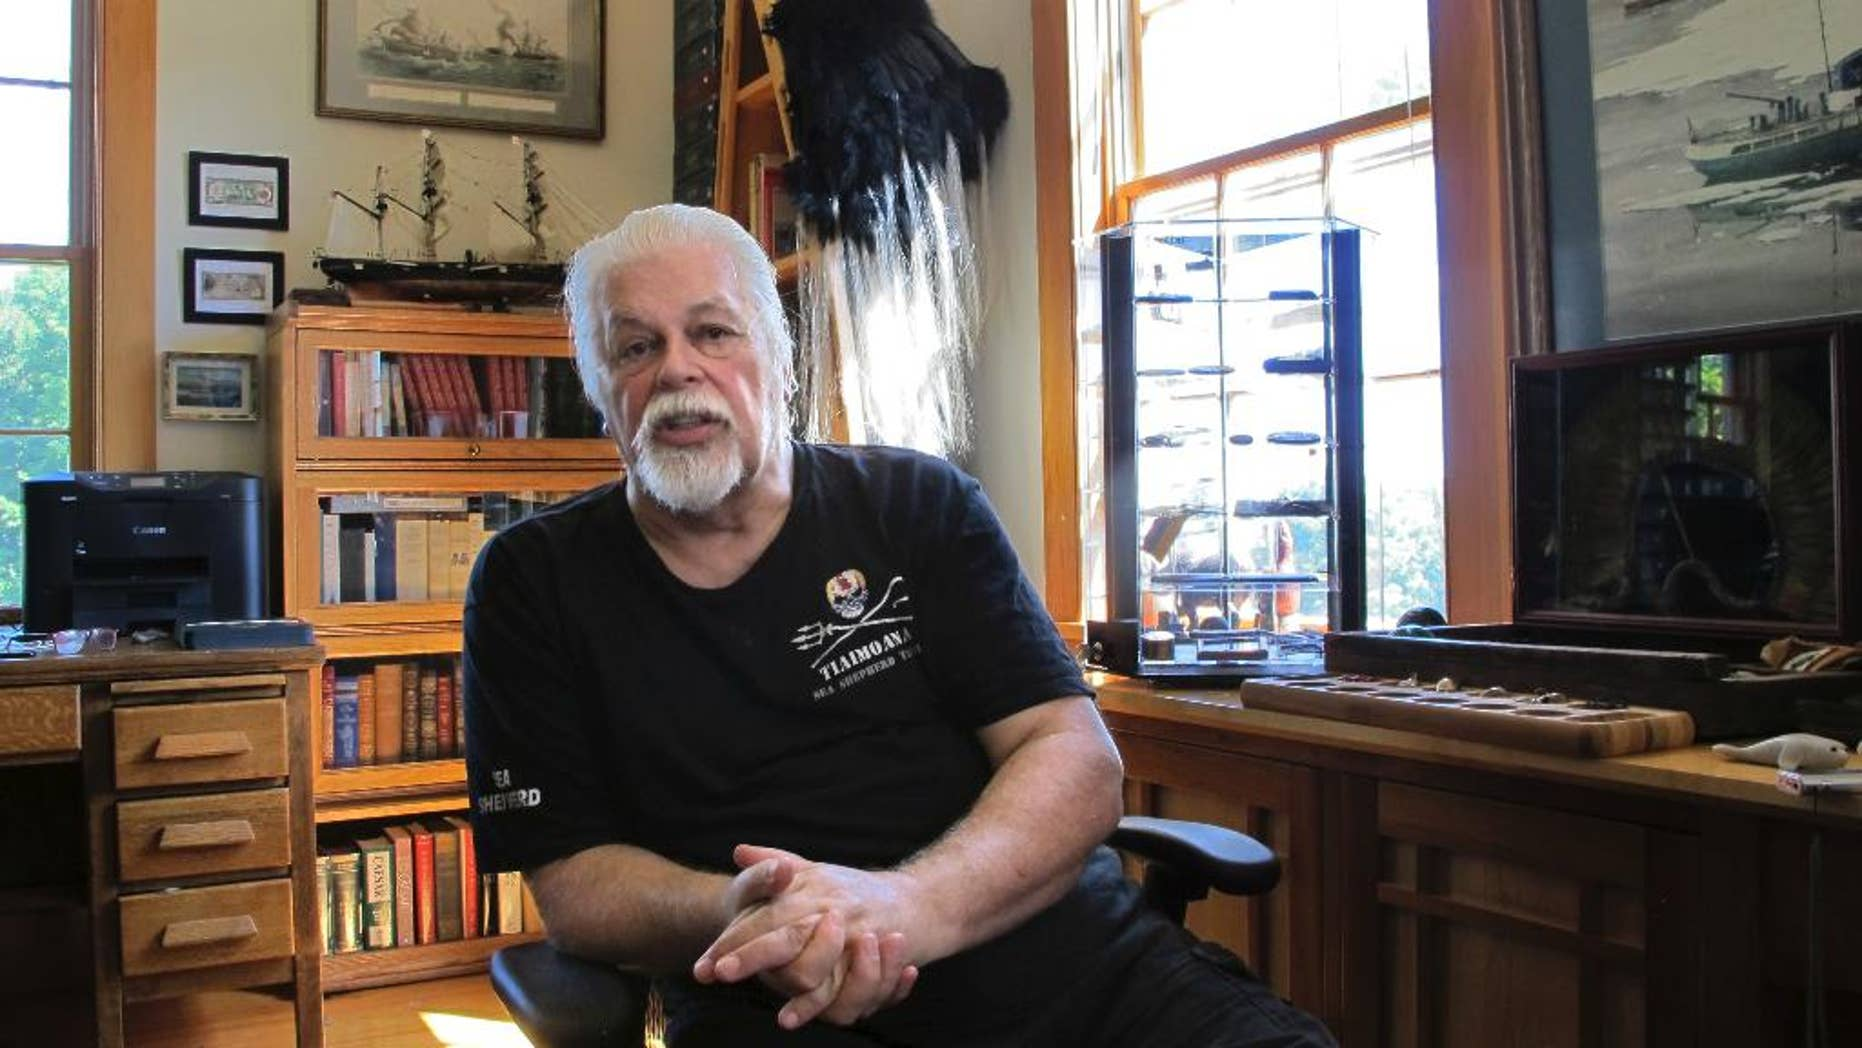 "In this Aug. 23, 2016 photo, Paul Watson, founder of the Sea Shepherd Conservation Society, made famous by the television show ""Whale Wars"" discusses a recent legal battle over anti-whaling activities, at his home office in Woodstock, Vt. Japan's Institute of Cetacean Research and a whale ship operator announced this week they'd reached an agreement with Sea Shepherd Conservation Society over those anti-whaling activities. Watson said the settlement only prevents the group's U.S. organization from interfering with Japanese whalers in the Southern Ocean. (AP Photo/Lisa Rathke)"